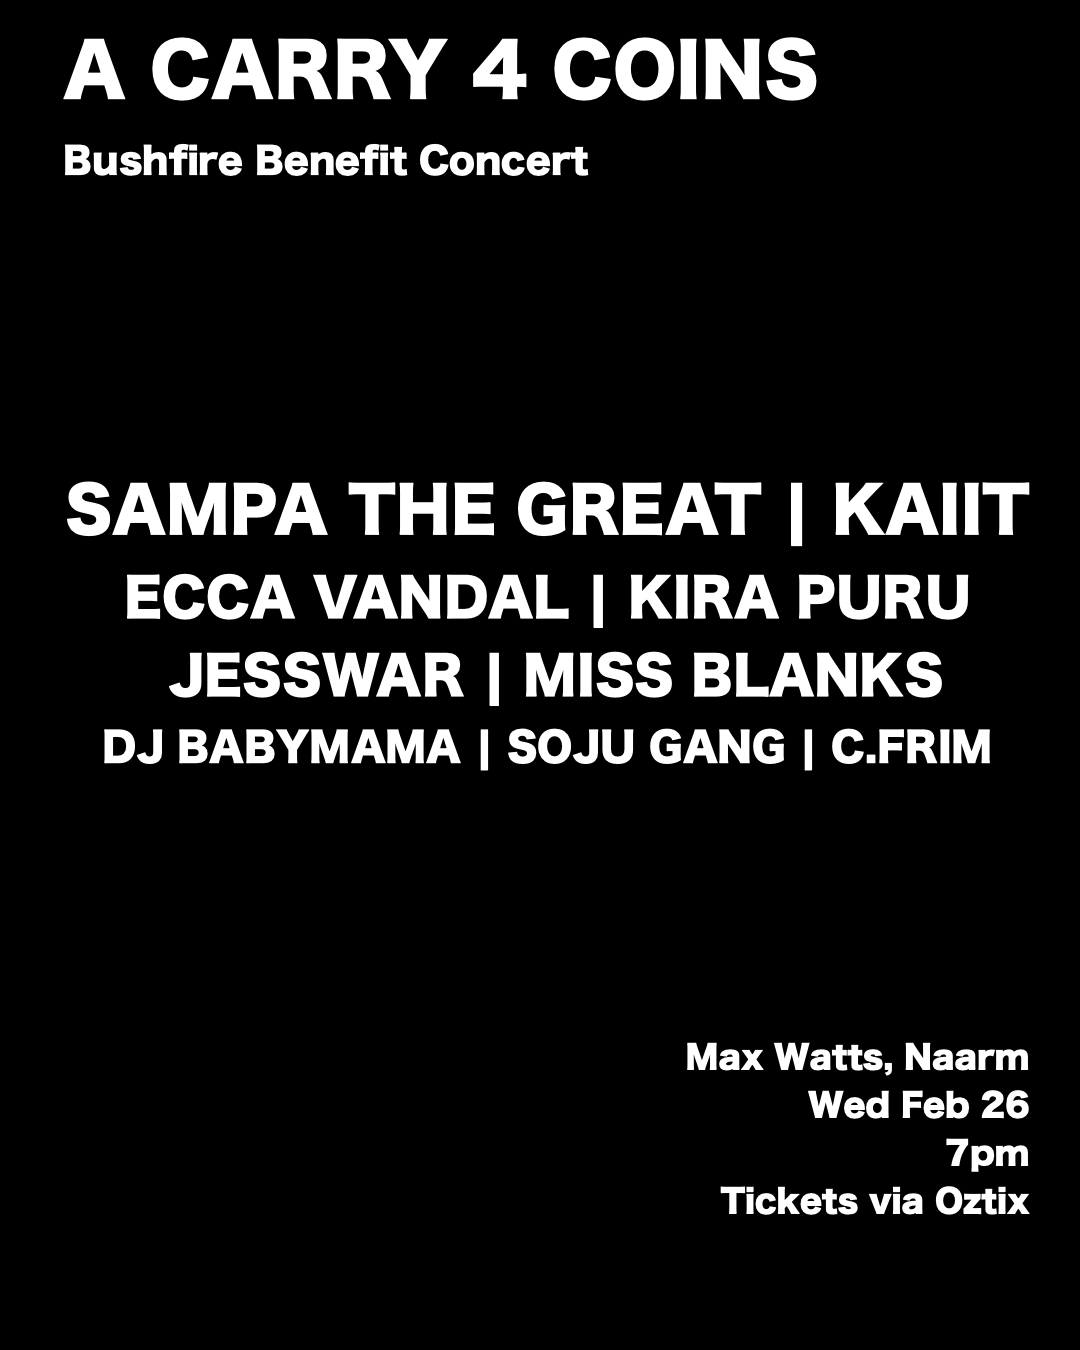 Carry 4 Coins bushfire benefit Melbourne Max Watts Sampa the Great